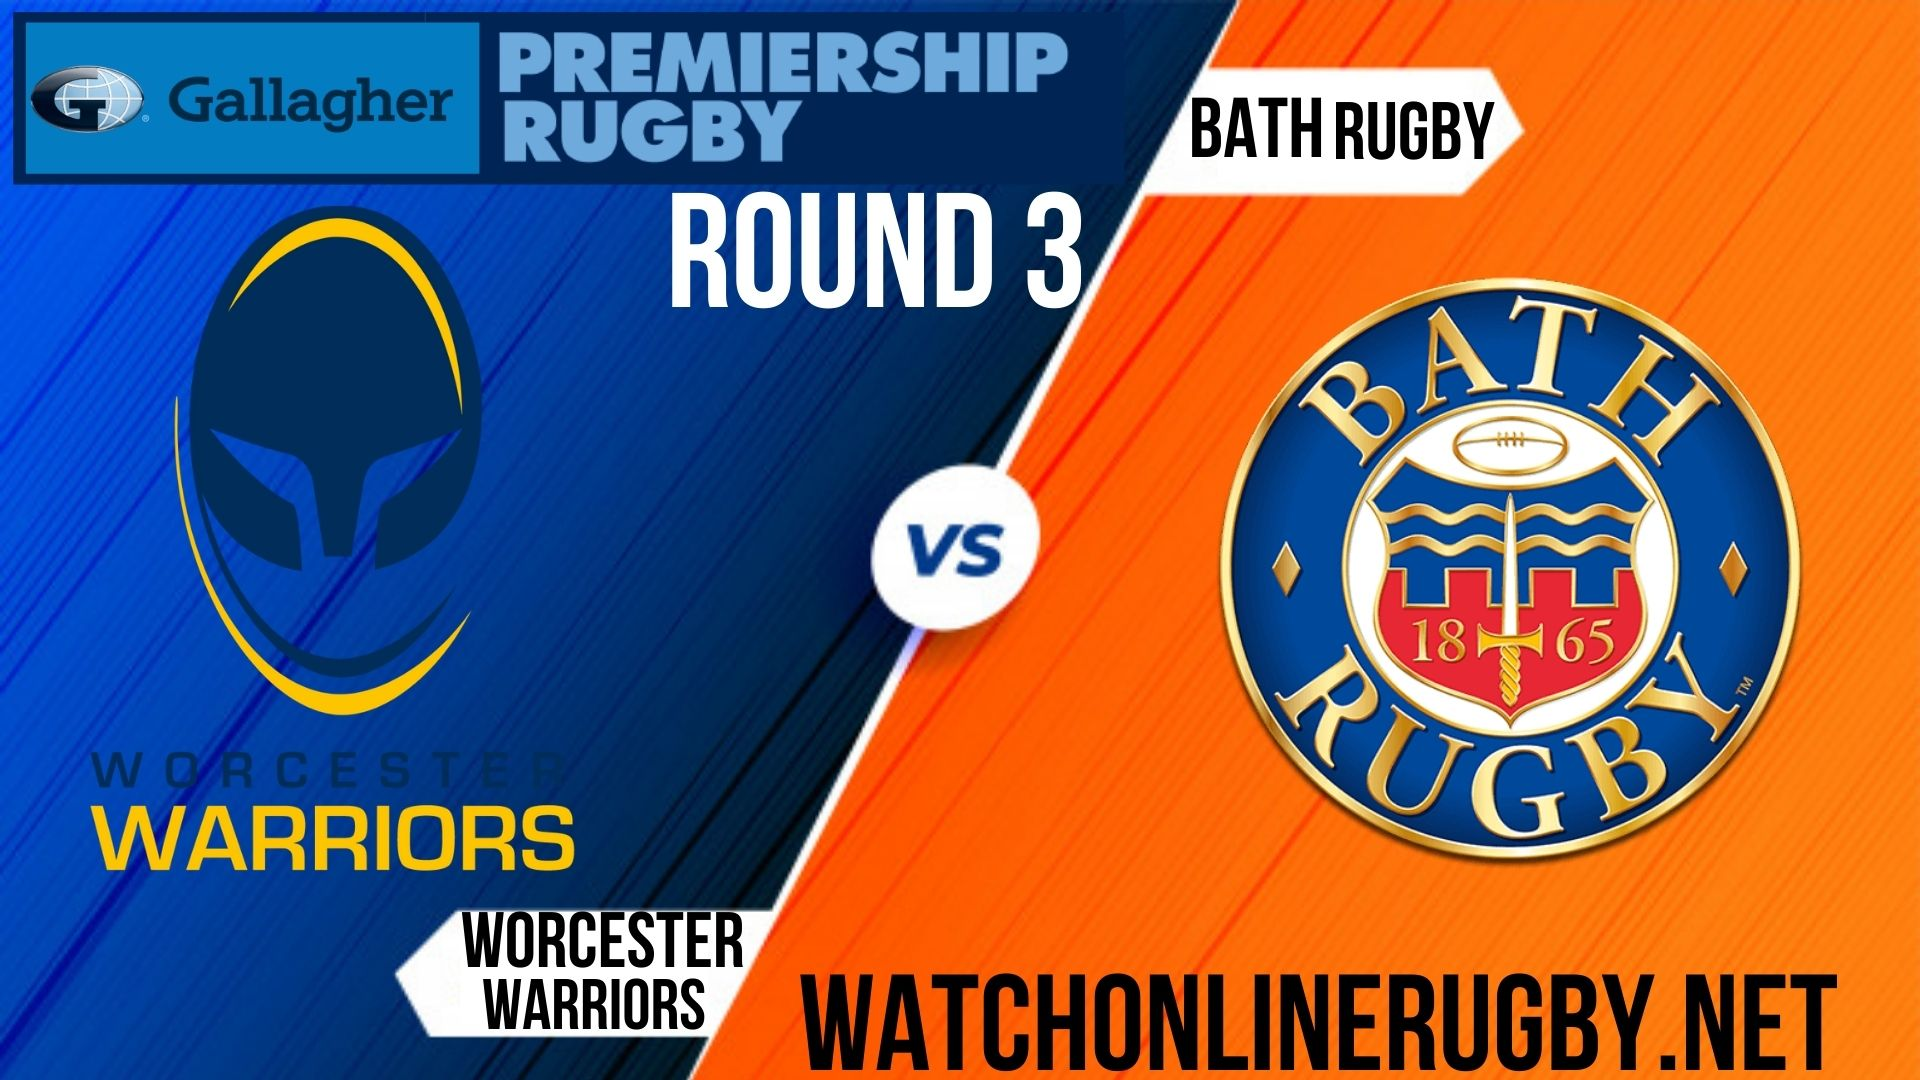 worcester-warriors-vs-bath-rugby-live